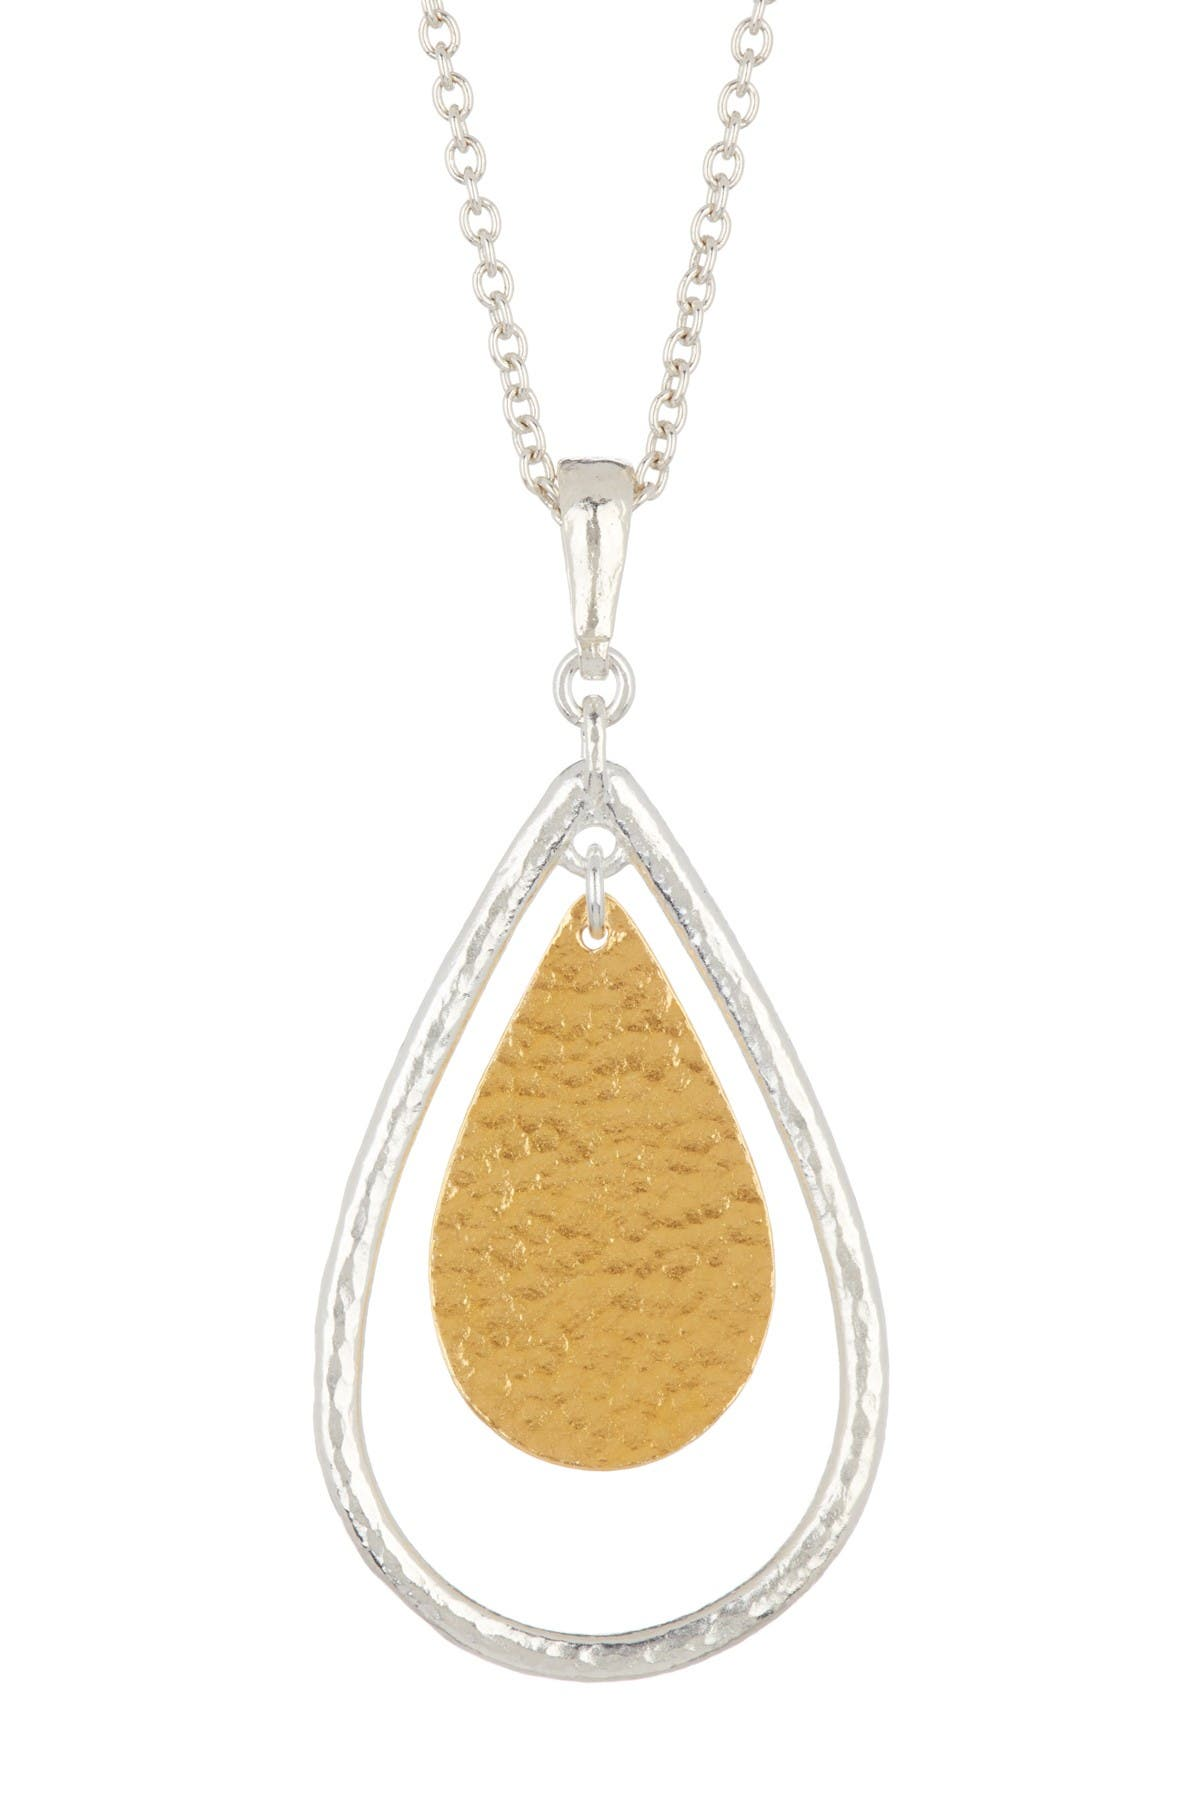 Image of Gurhan 24K Gold & Sterling Silver Two-Tone Pear Geo Necklace